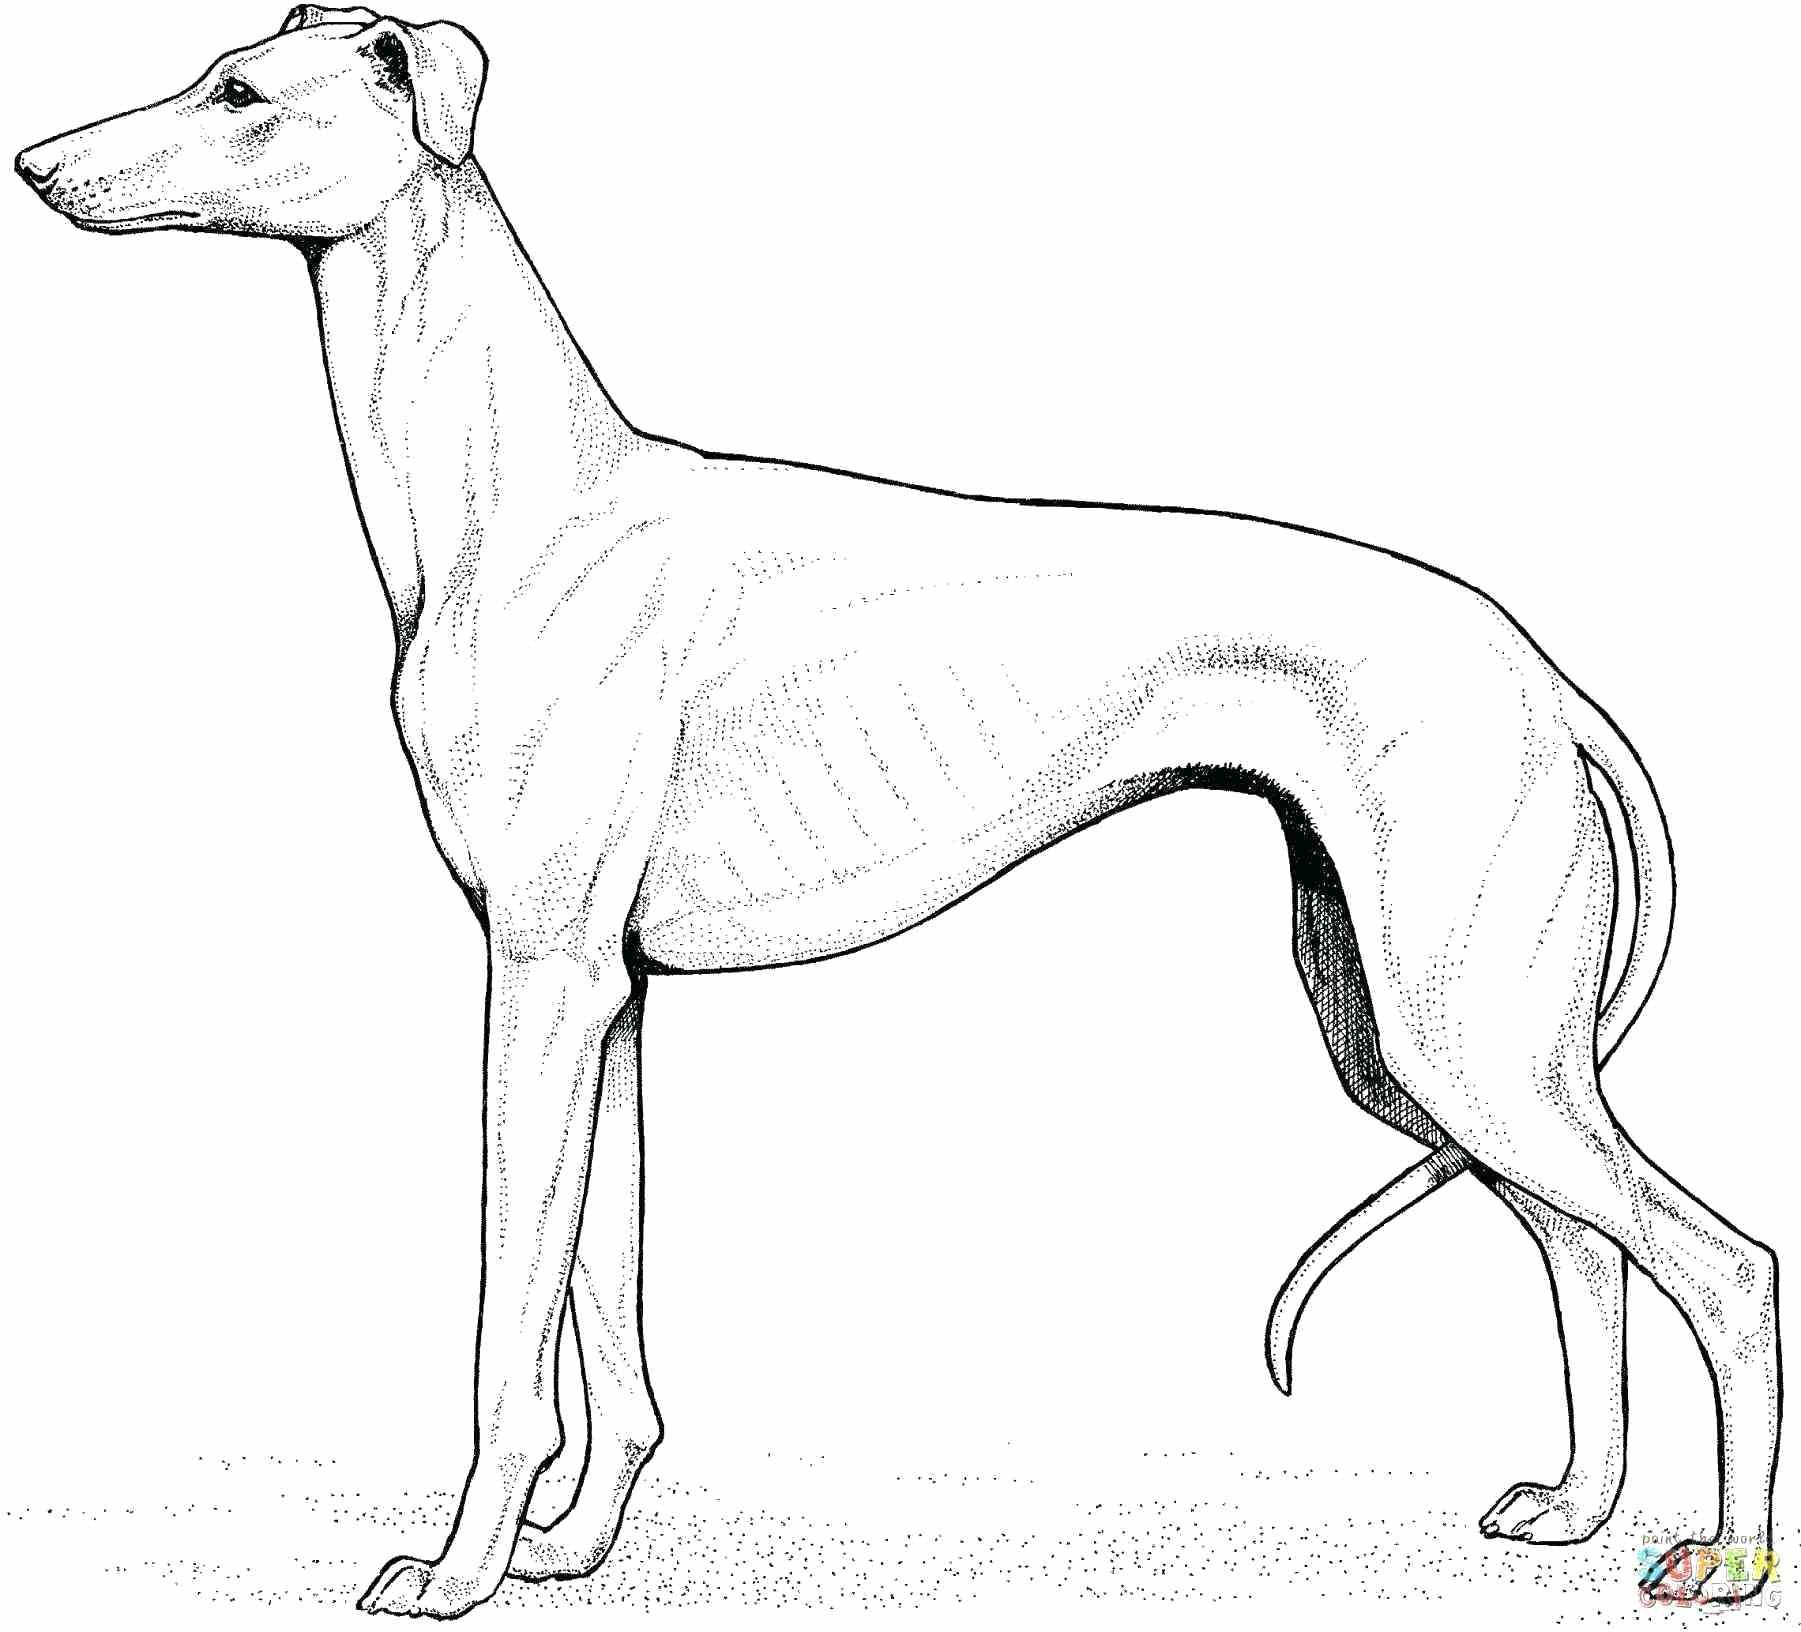 Golden Retriever Coloring Page Golden Retriever Drawing At Getdrawings Free For Personal Use Albanysinsanity Com Whippet Golden Retriever Drawing Greyhound Tattoo [ 1632 x 1801 Pixel ]